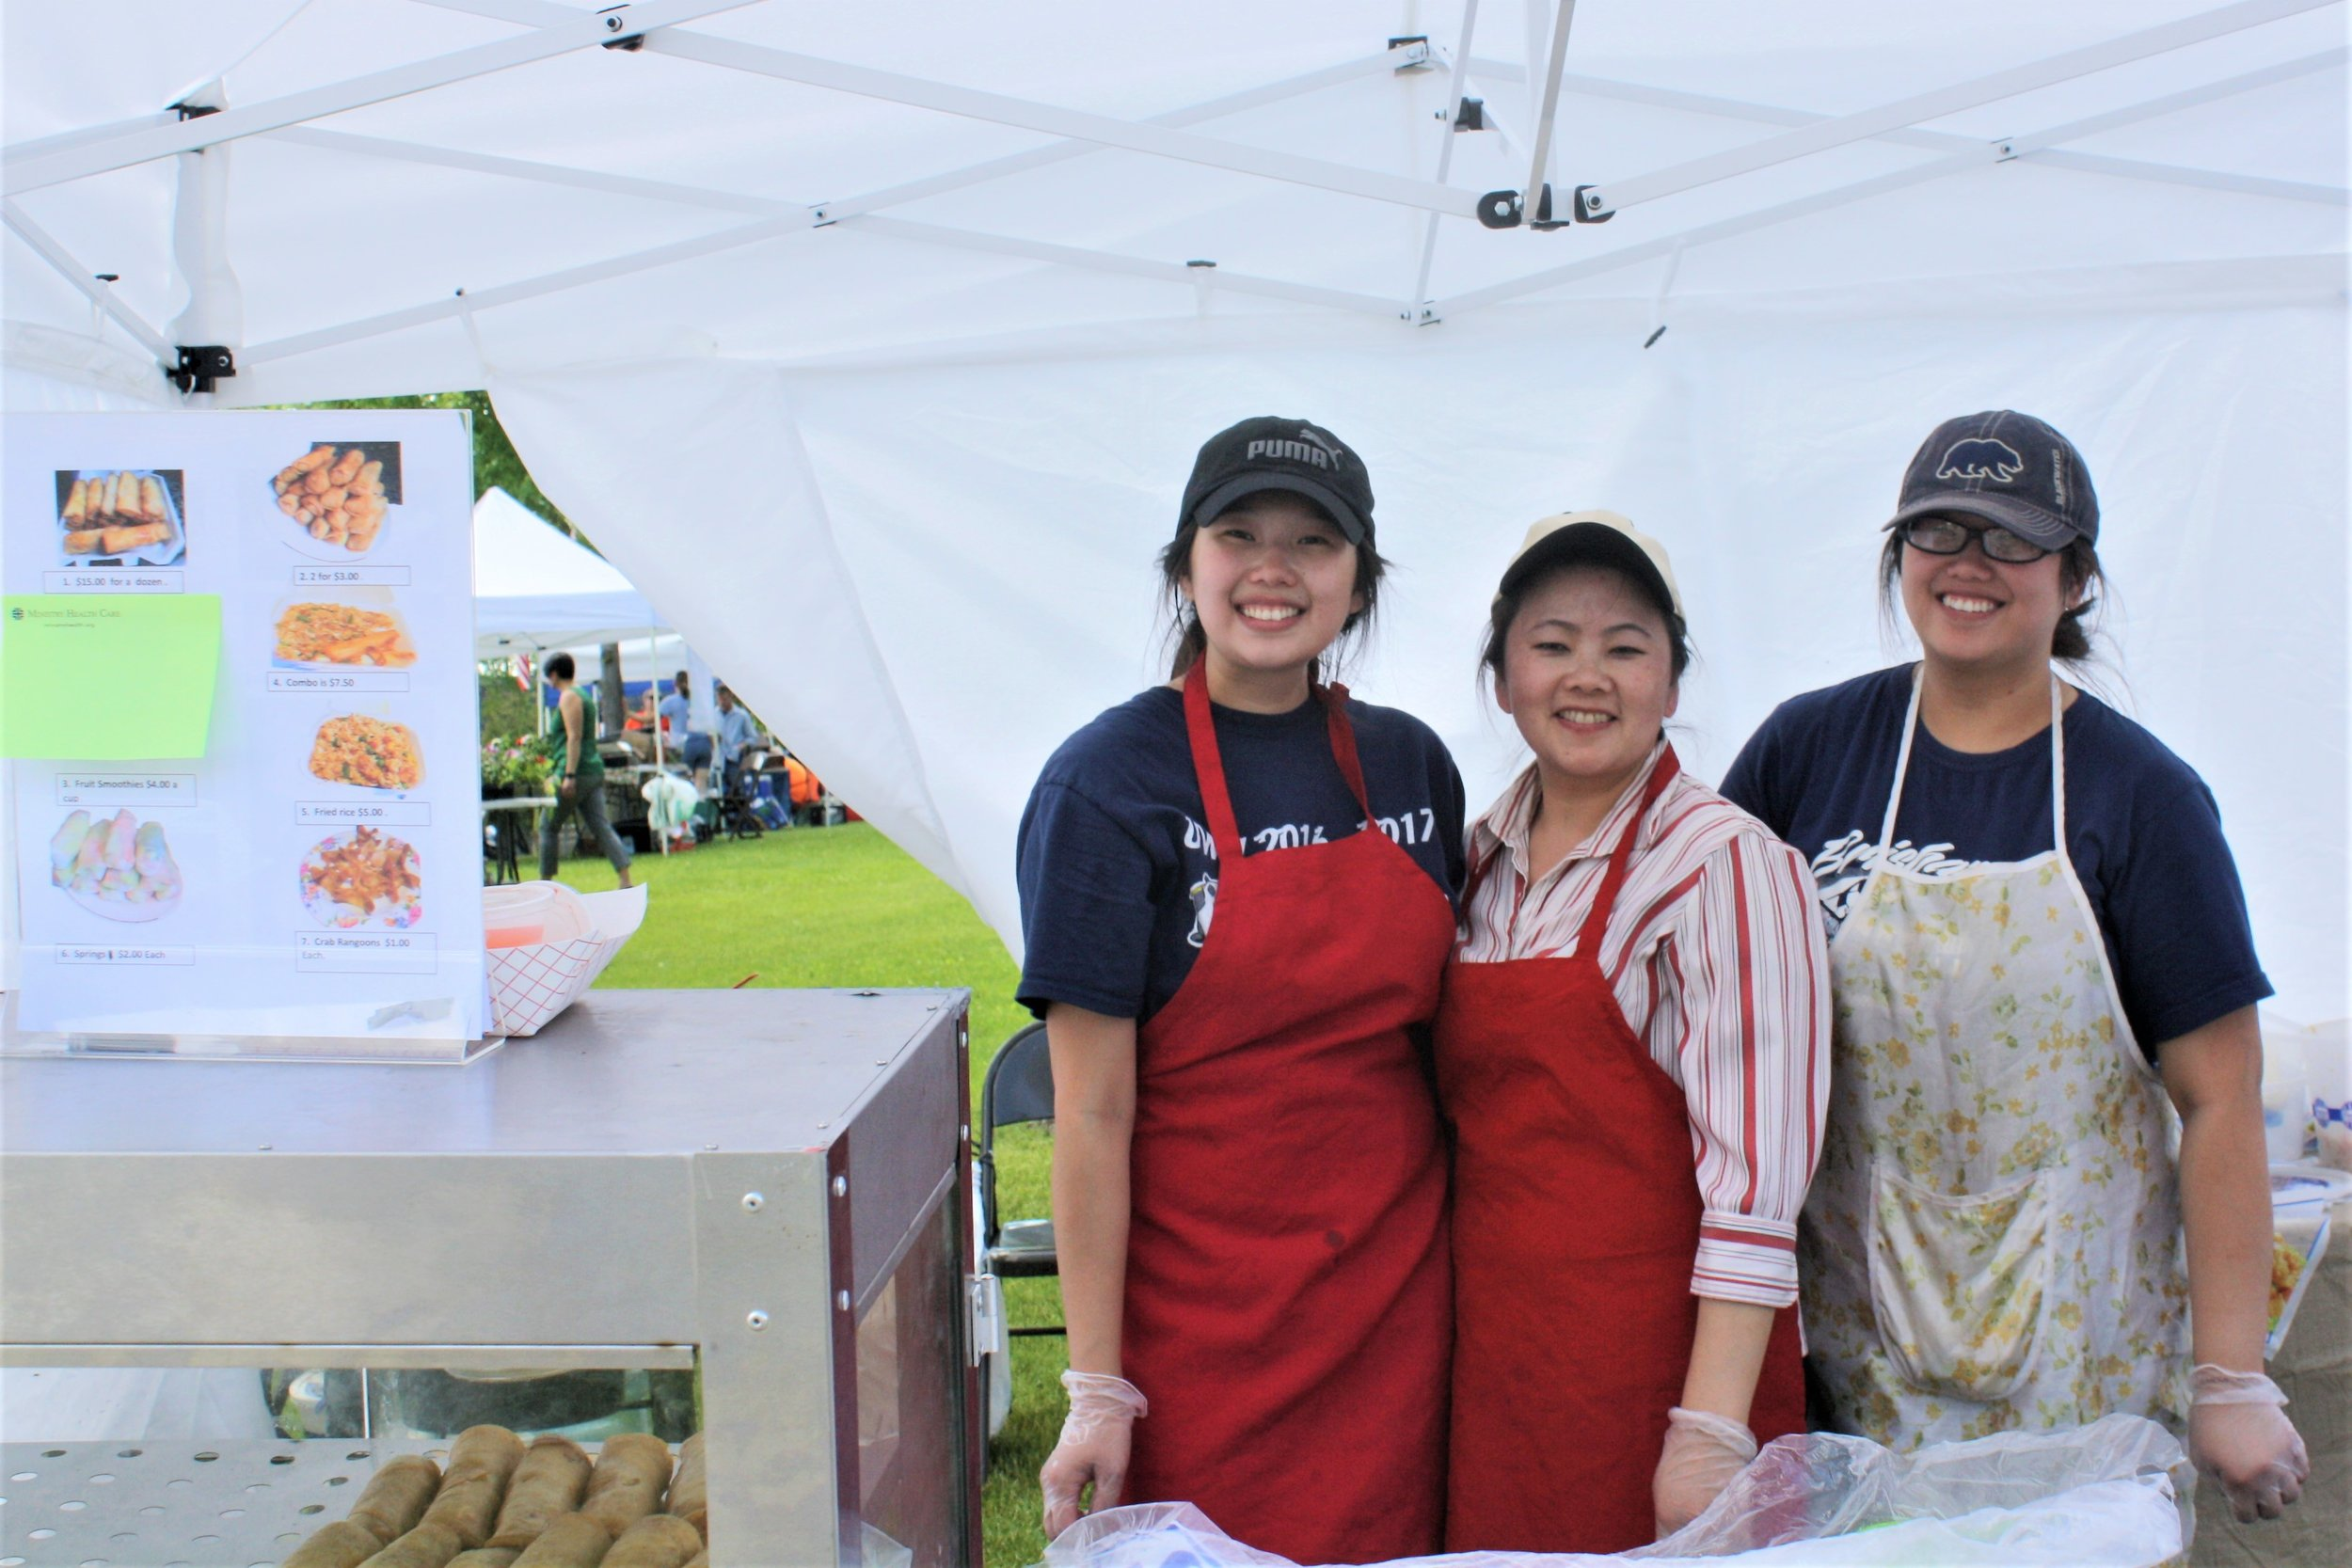 Los Tres Manantiales (Giselle, Laura and Jose Gaytan) will be joining the Market at Town Square for the first time, bringing classic, homemade Mexican foods.